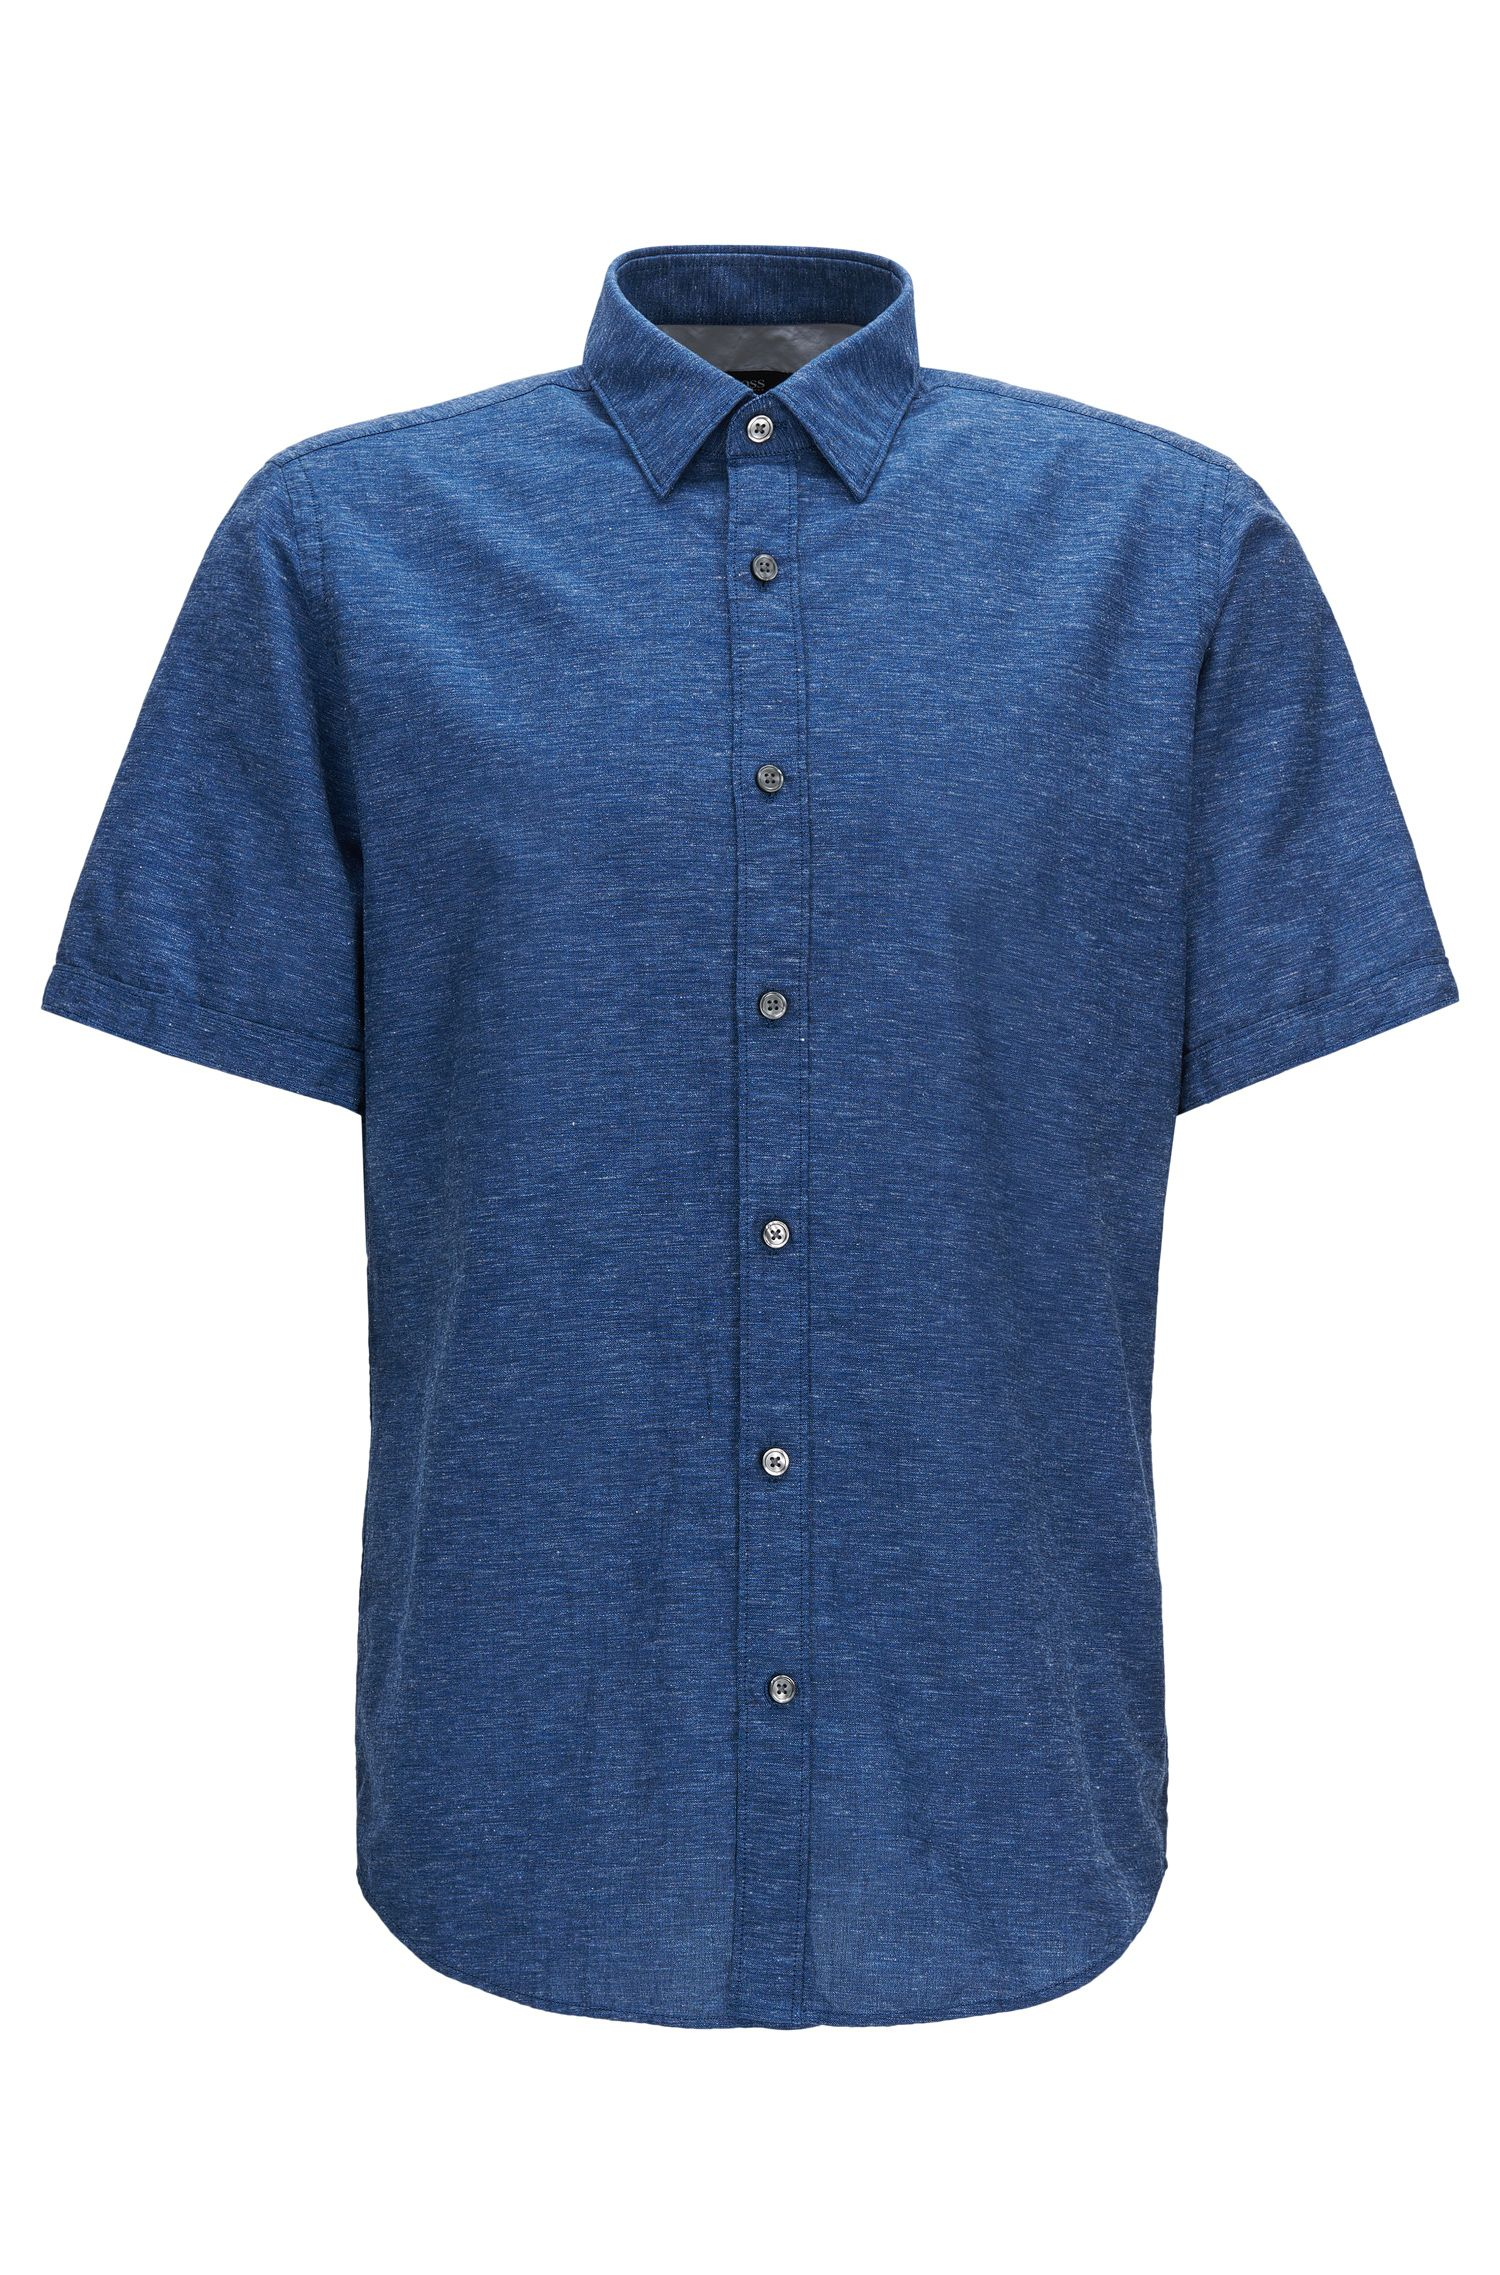 Regular-fit short-sleeved cotton shirt blended with linen